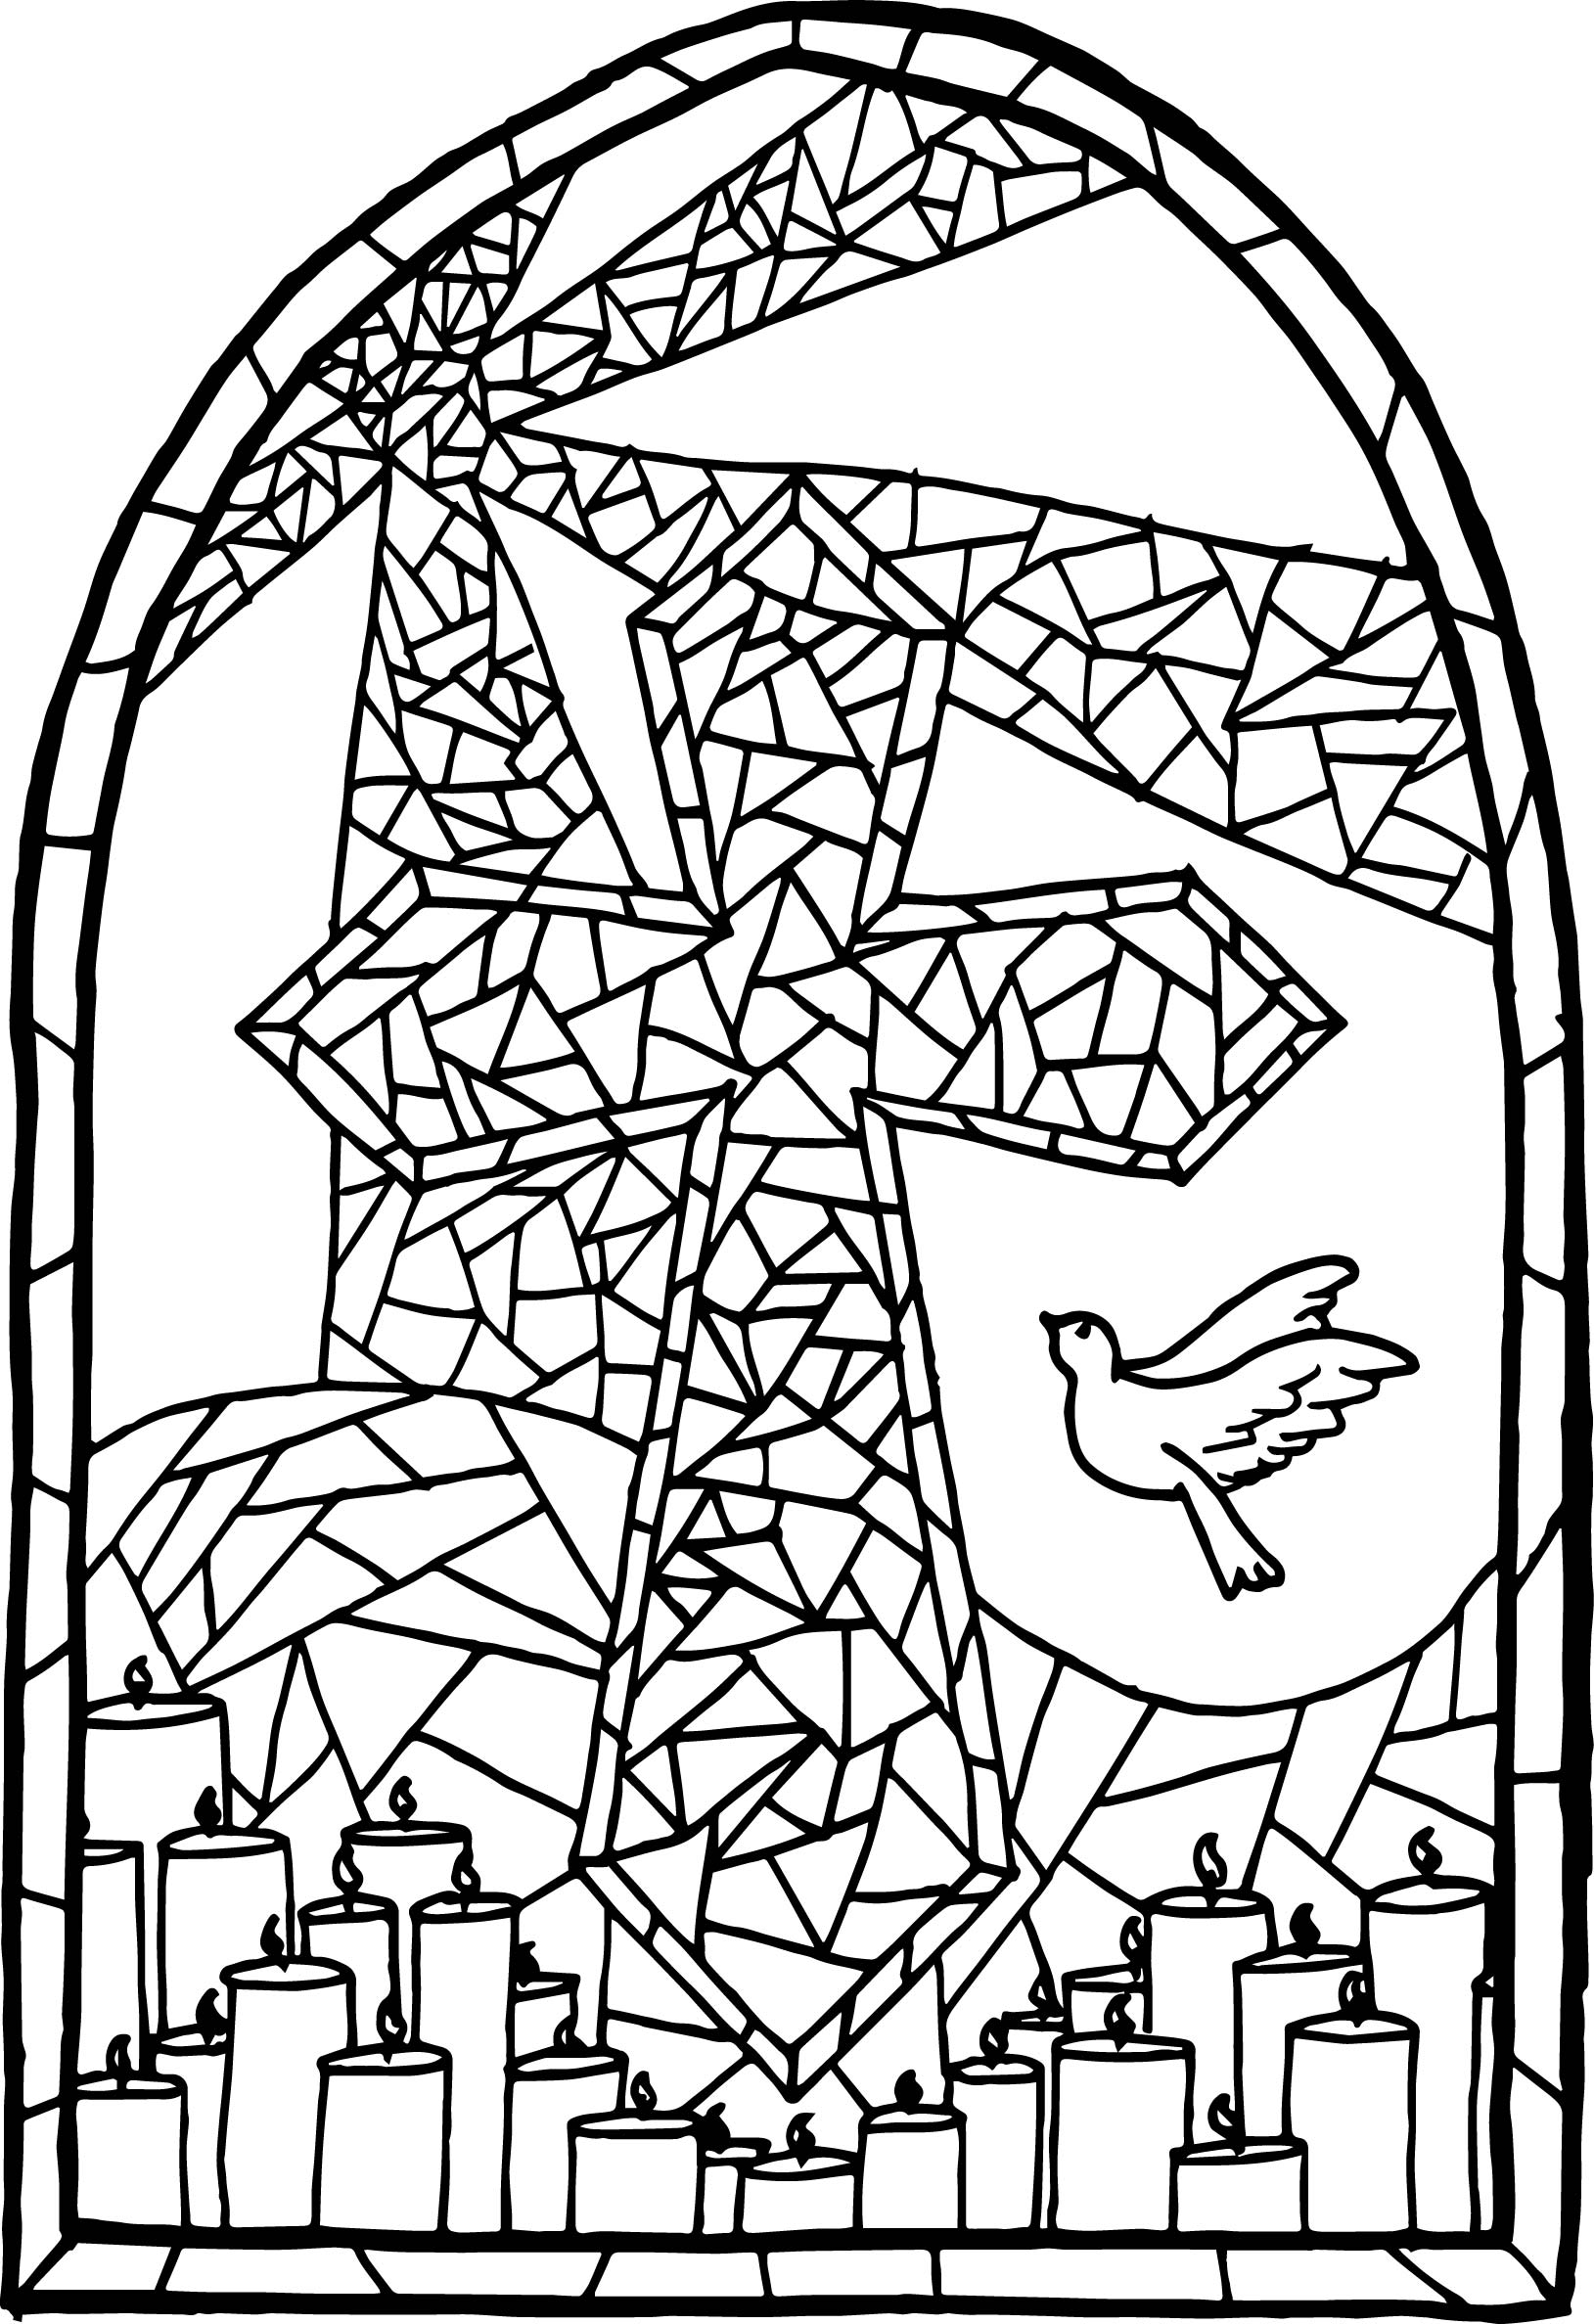 stained glass cross coloring page stained glass cross coloring page cross stained page glass coloring